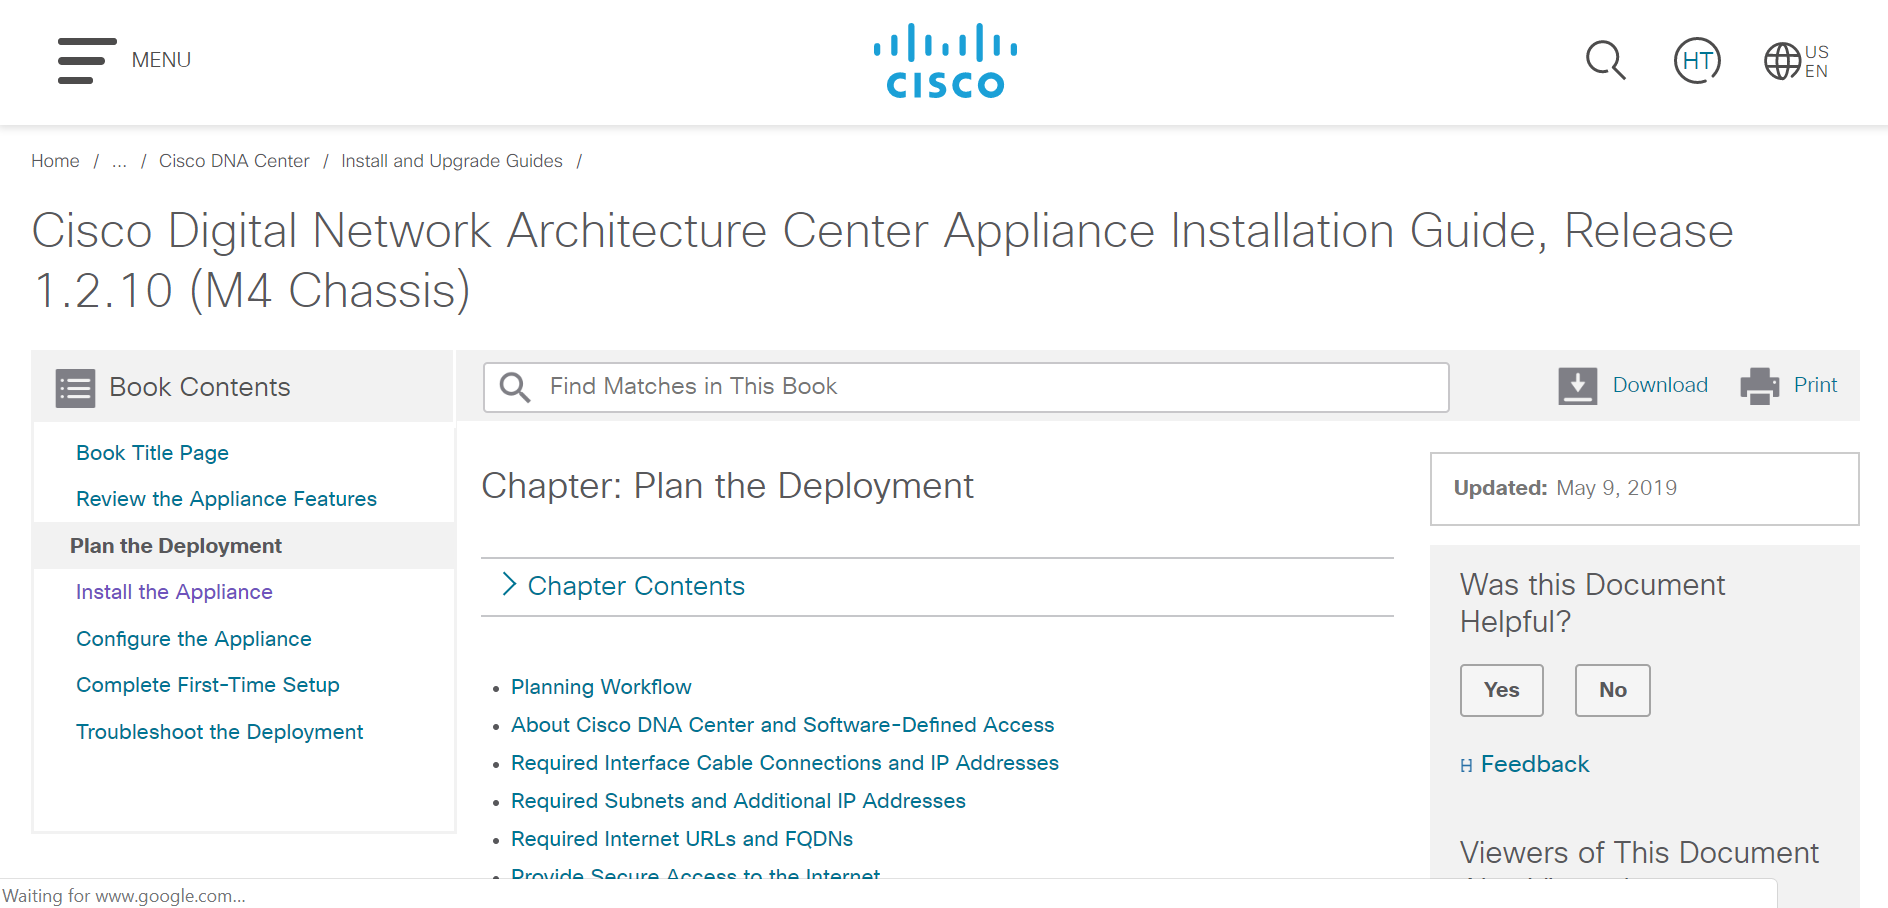 Cisco Wlc 9800 Installation Guide